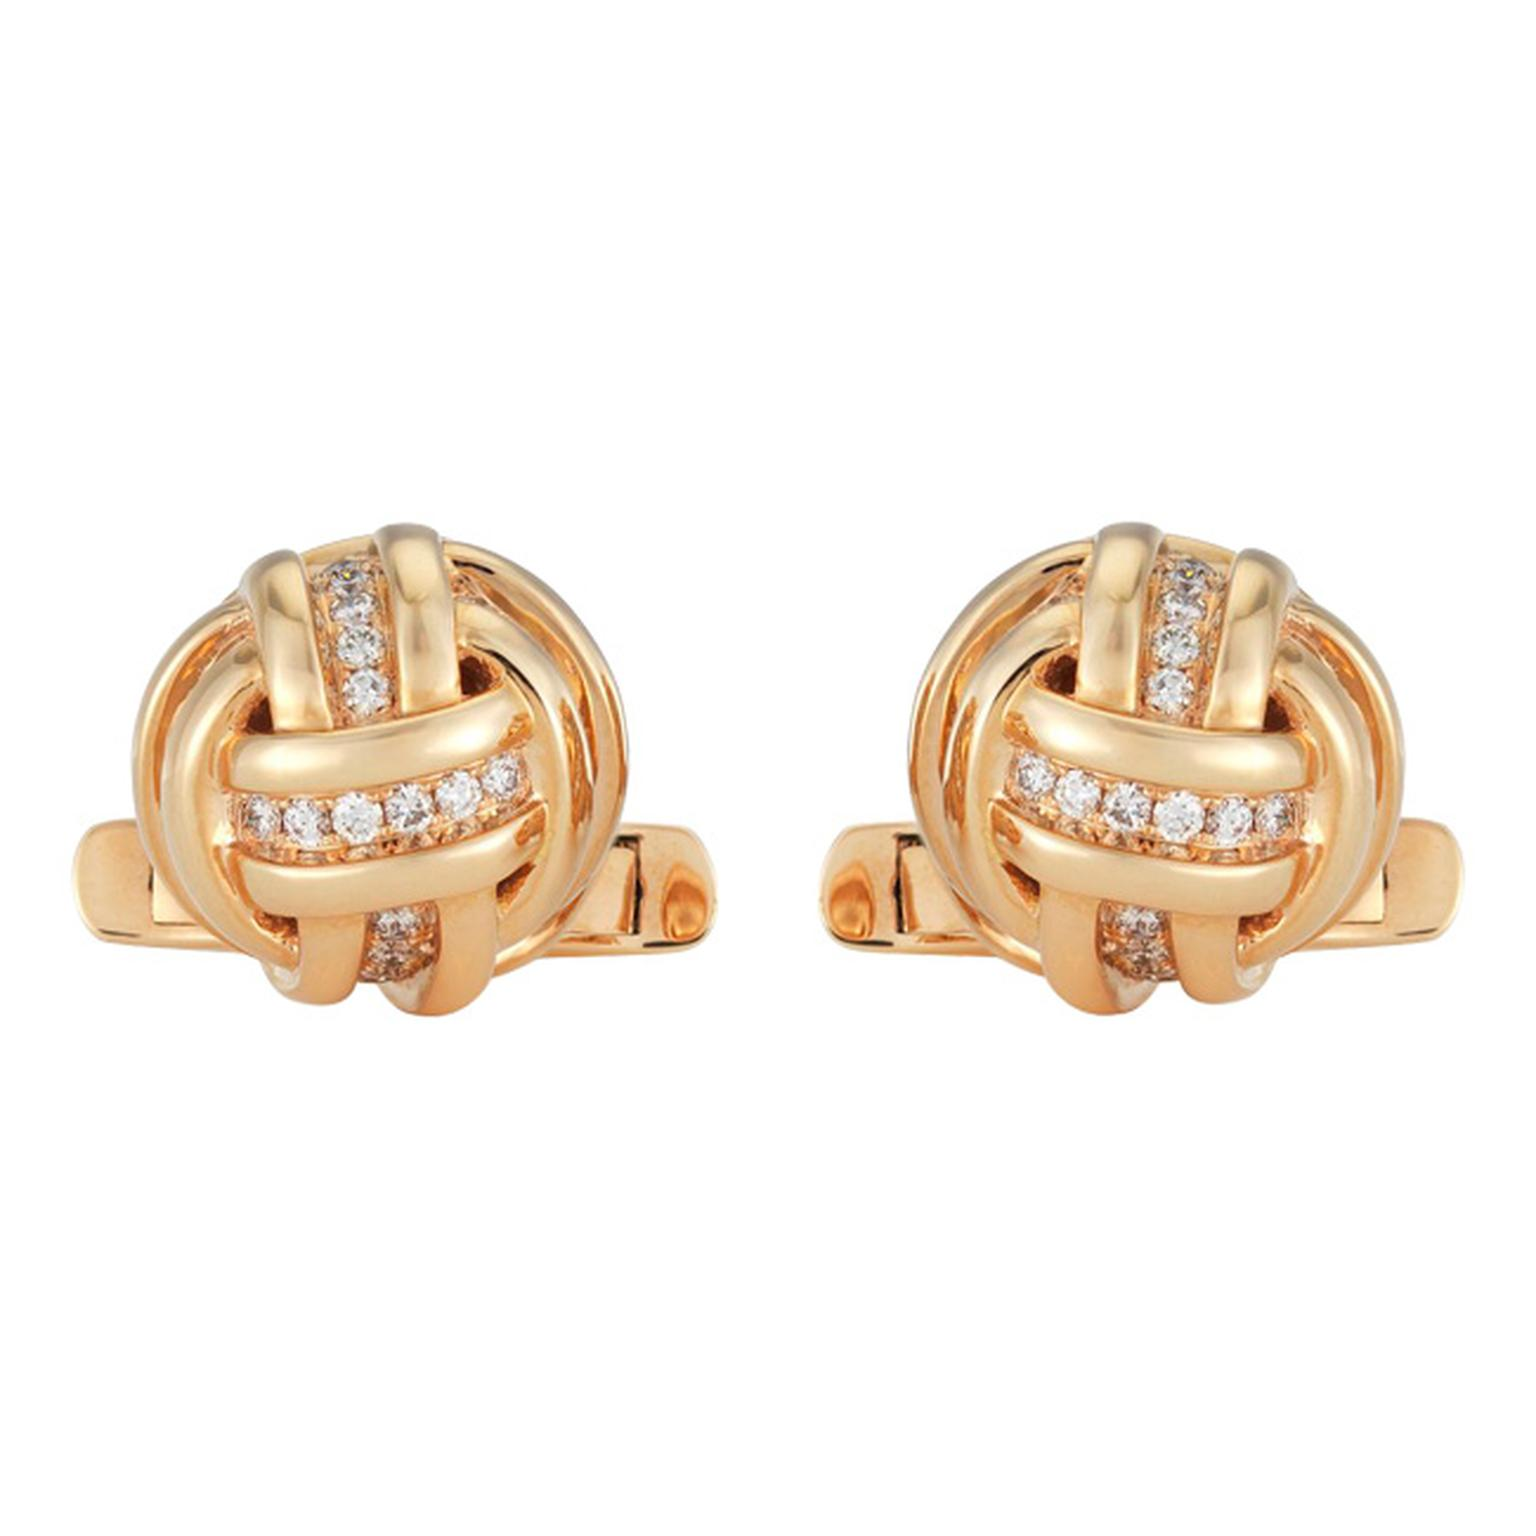 De Beers Knot diamond and rose gold cufflinks (£4,450).